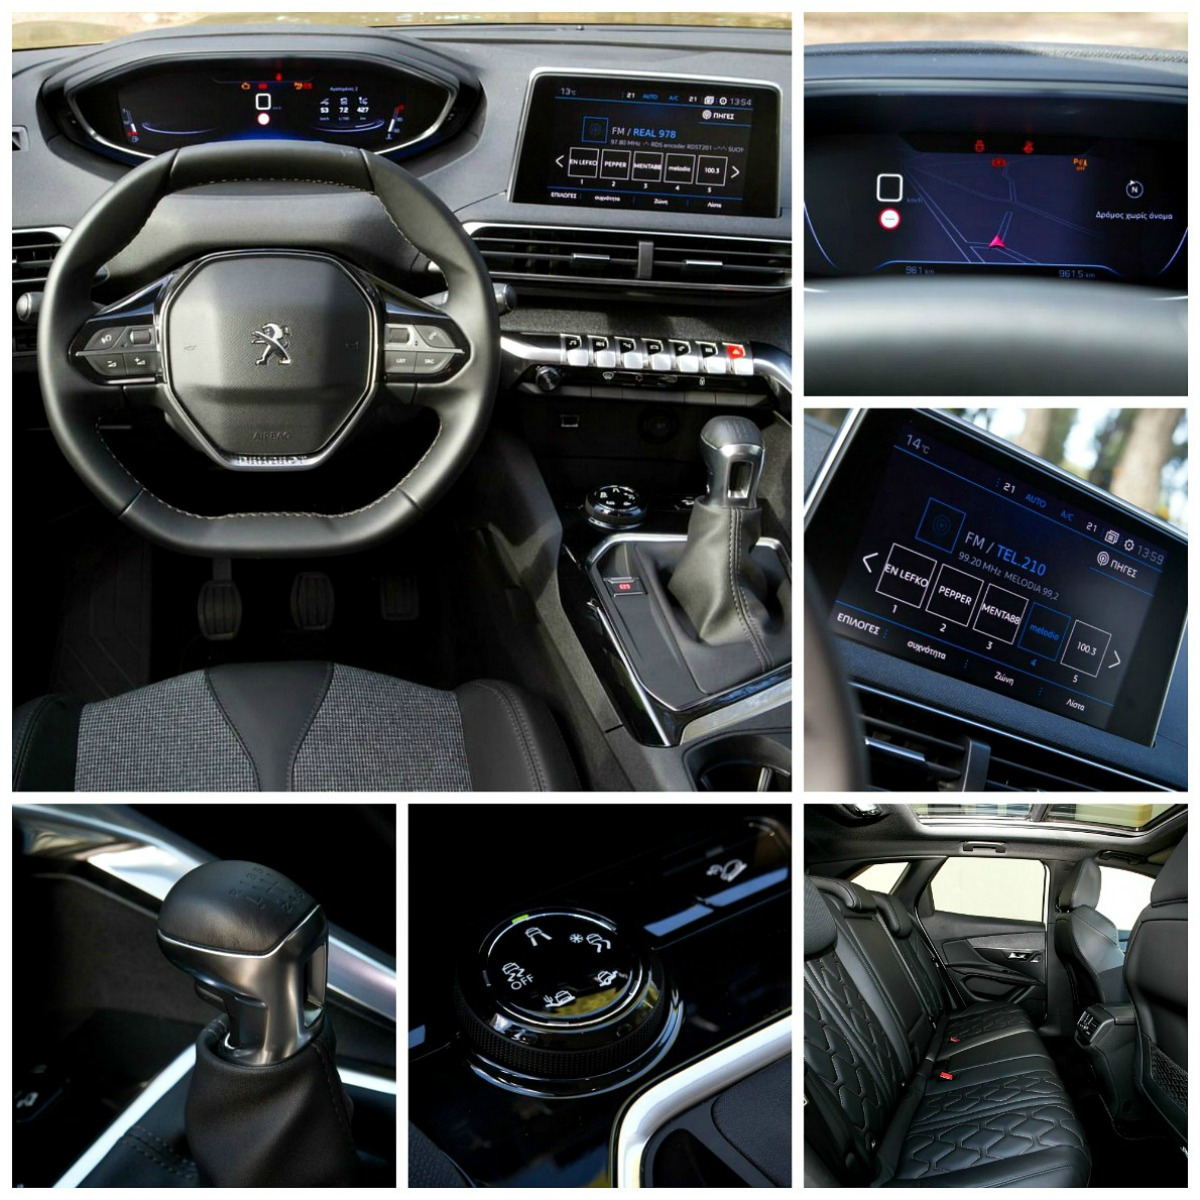 Peugeot 3008 collage